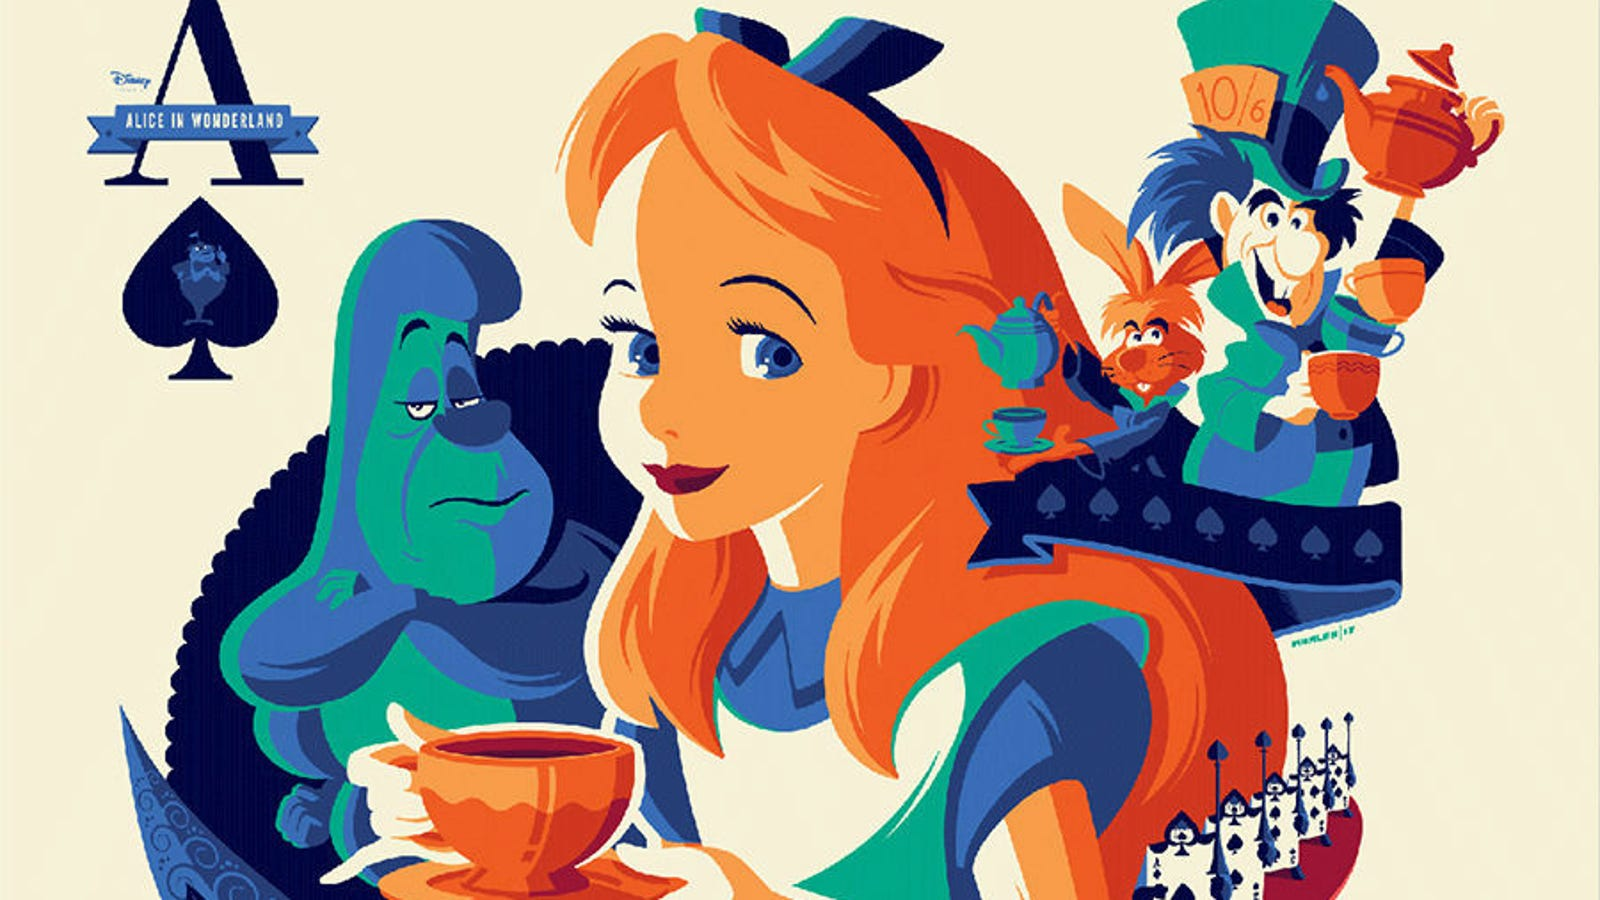 This Beautiful, Classic Disney-Inspired Art Show Is A Time